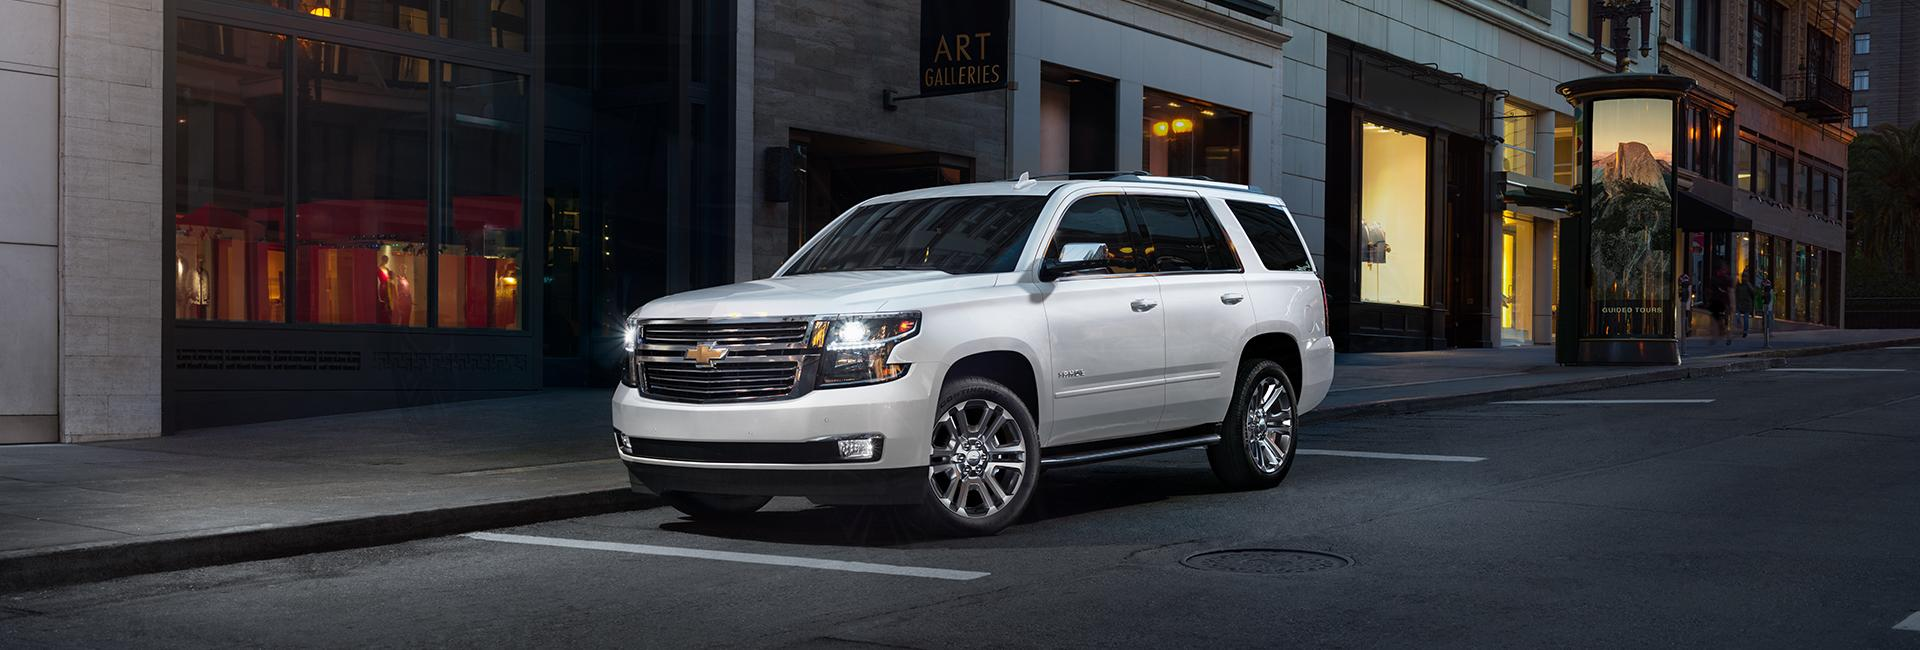 Picture of the 2020 Chevy Tahoe for sale at Spitzer Chevy North Canton Ohio